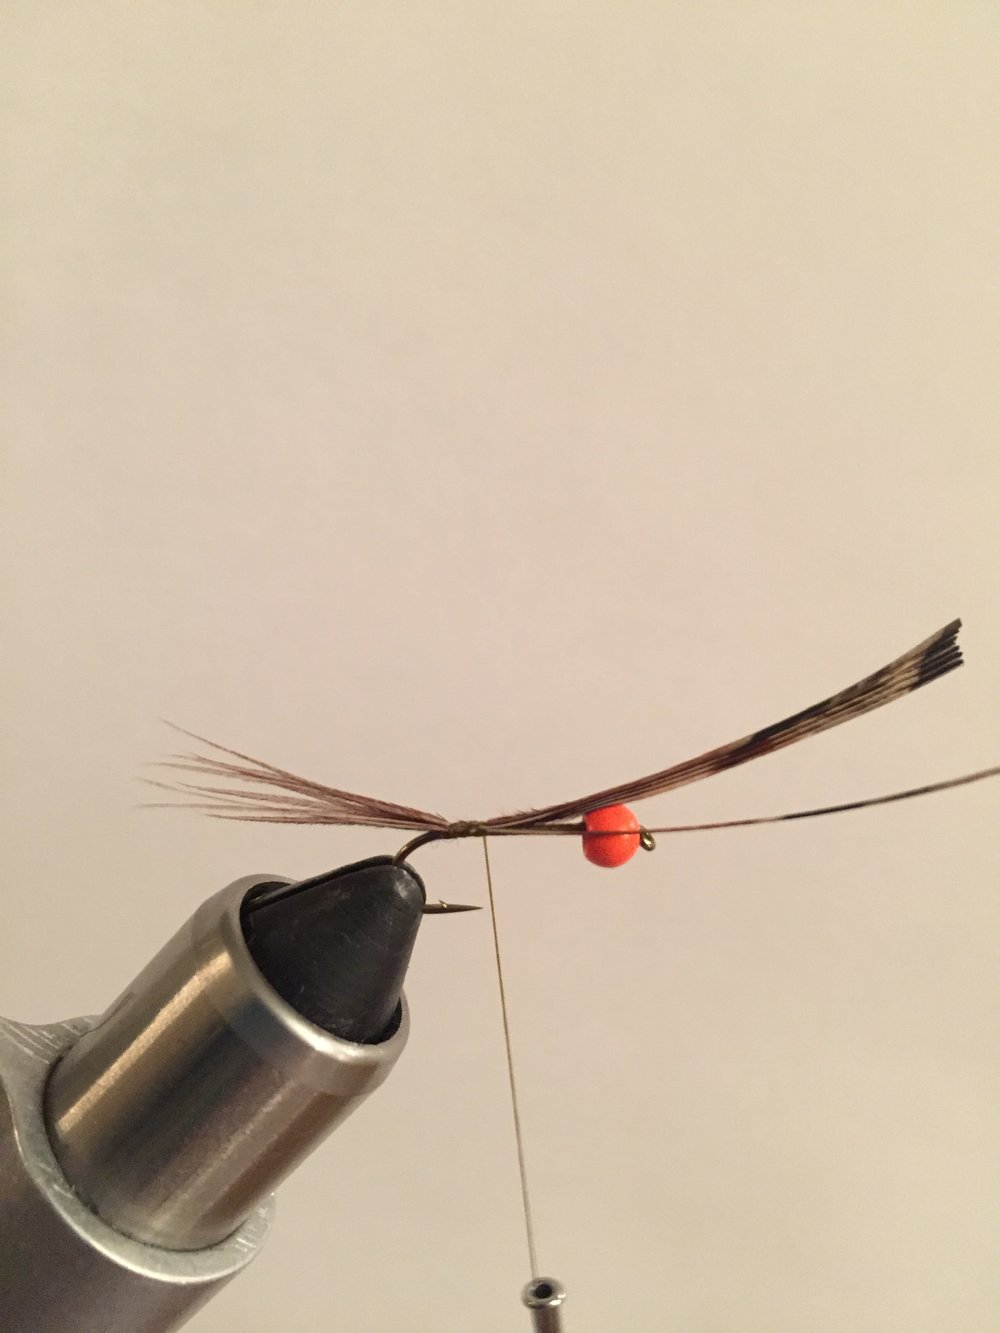 Step 2:  Cut 7 or more fibers of pheasant tail that are slightly longer than the shank of the hook and tie them in at the bend of the hook. Tie up to the bead and then return the thread back down to the bend.